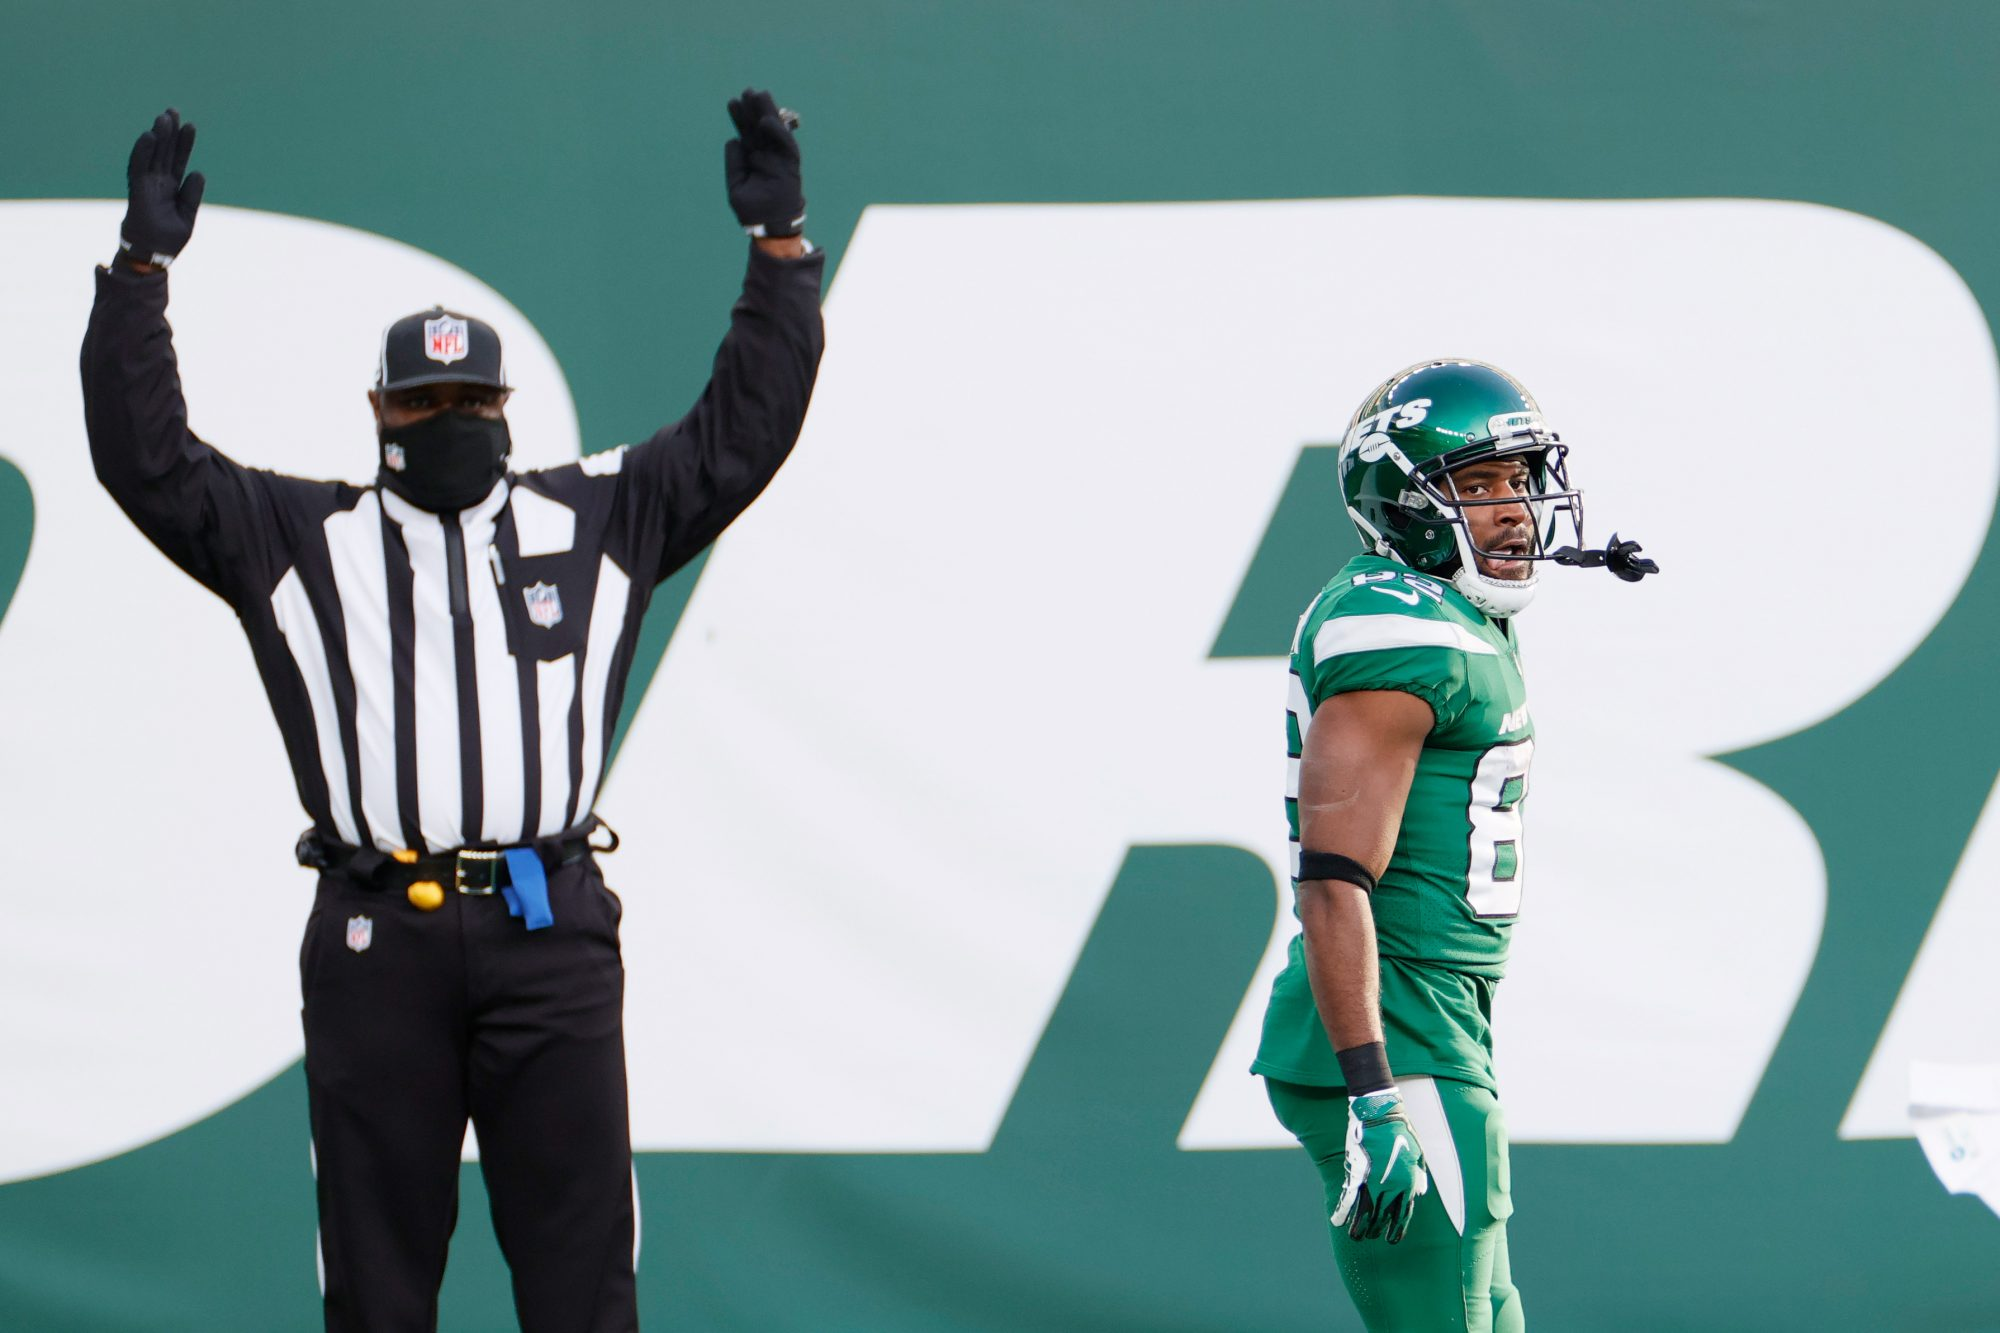 """A referee signals """"touchdown"""" behind a Jets player whose conflicted expression is inscrutable."""